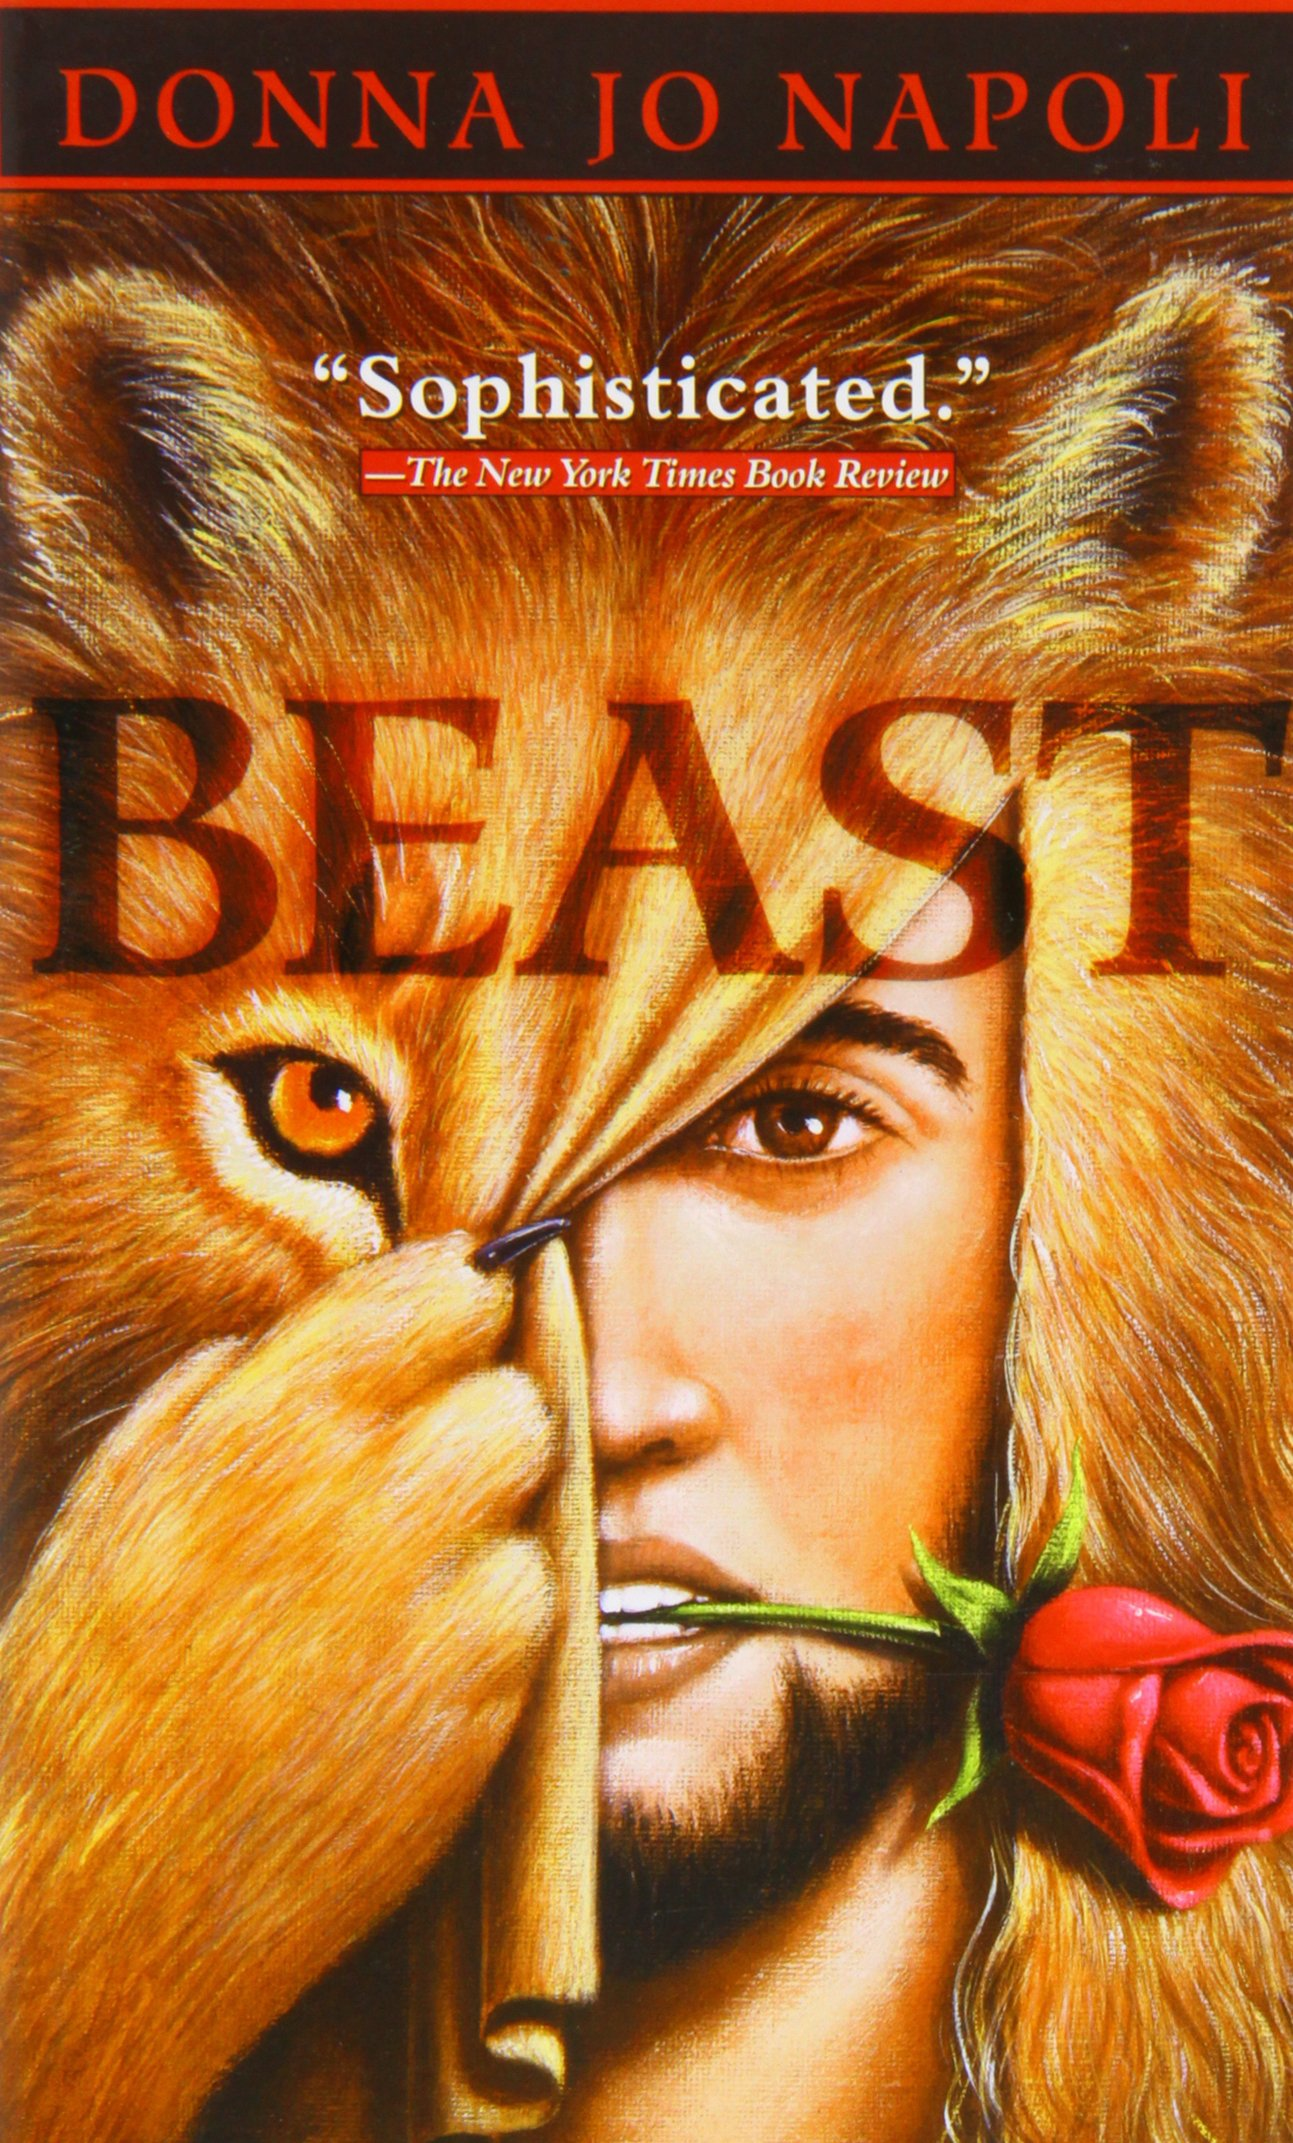 Love Each Other When Two Souls: 5 Fantastic Beauty And The Beast Adaptations That Go